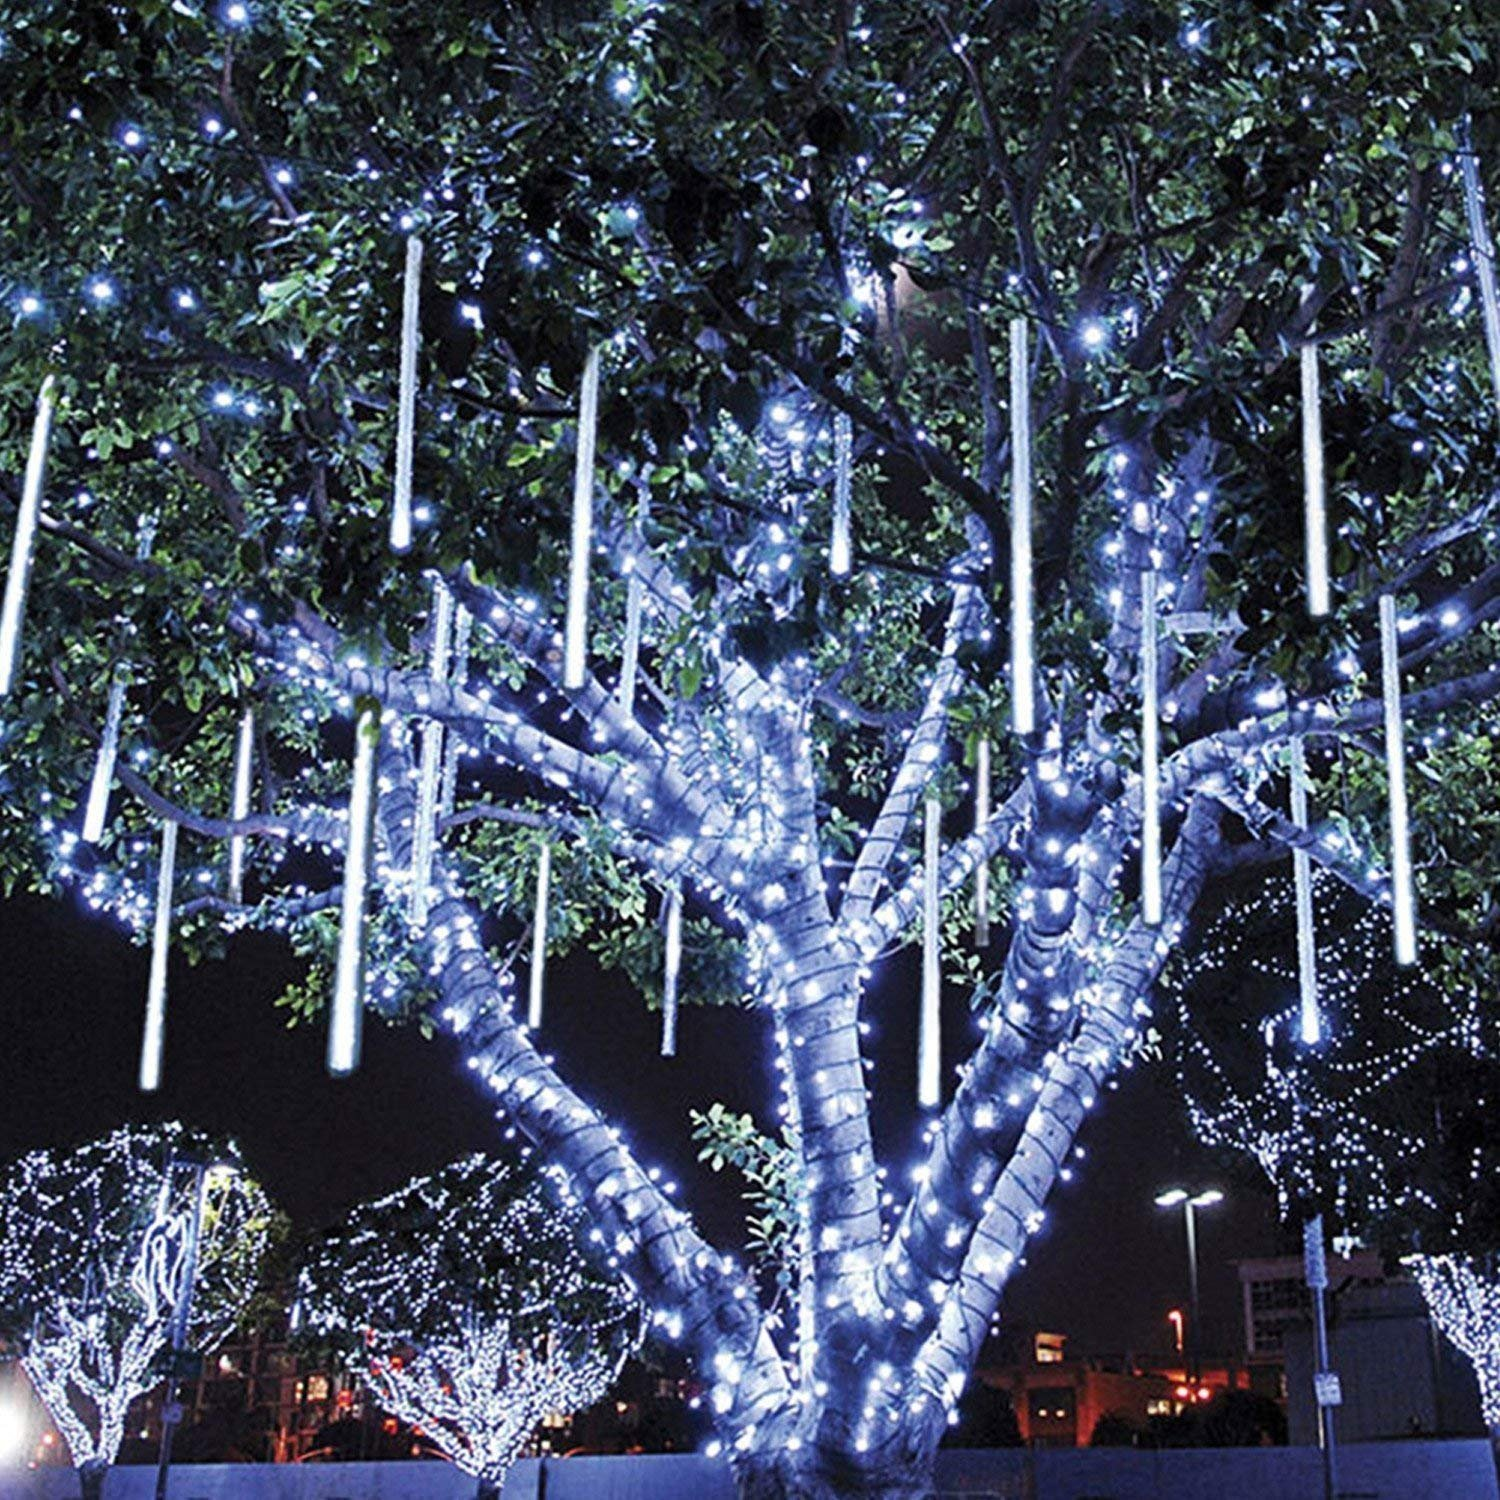 Amicool Meteor Shower Lights Falling Rain Lights Icicle Snow String Lights 30cm 8 Tubes 144 Waterproof LEDs Wedding Party Holiday Christmas Decorations